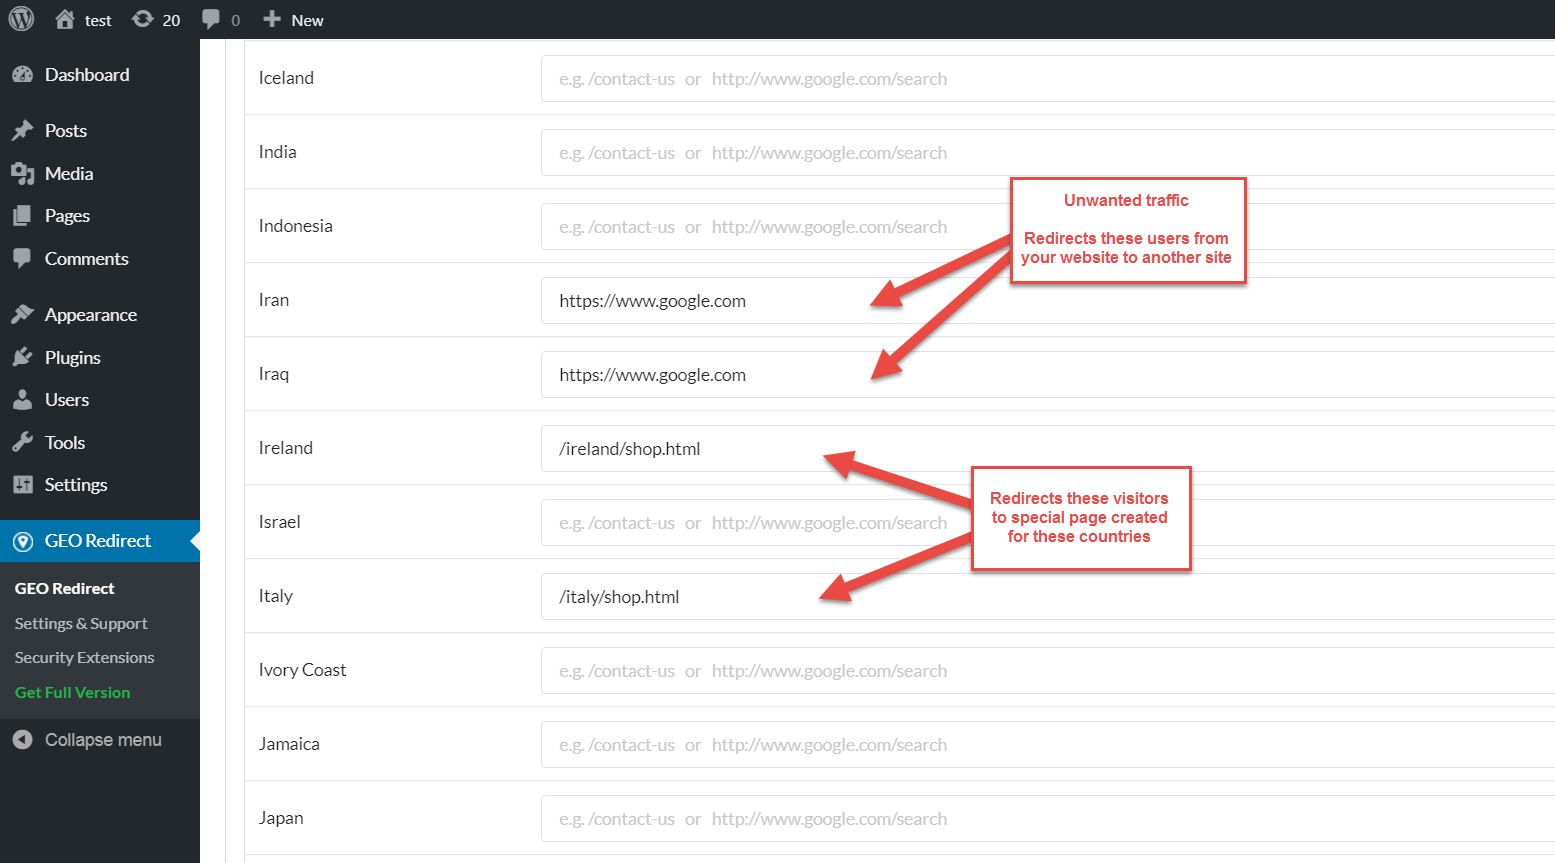 Redirect settings page